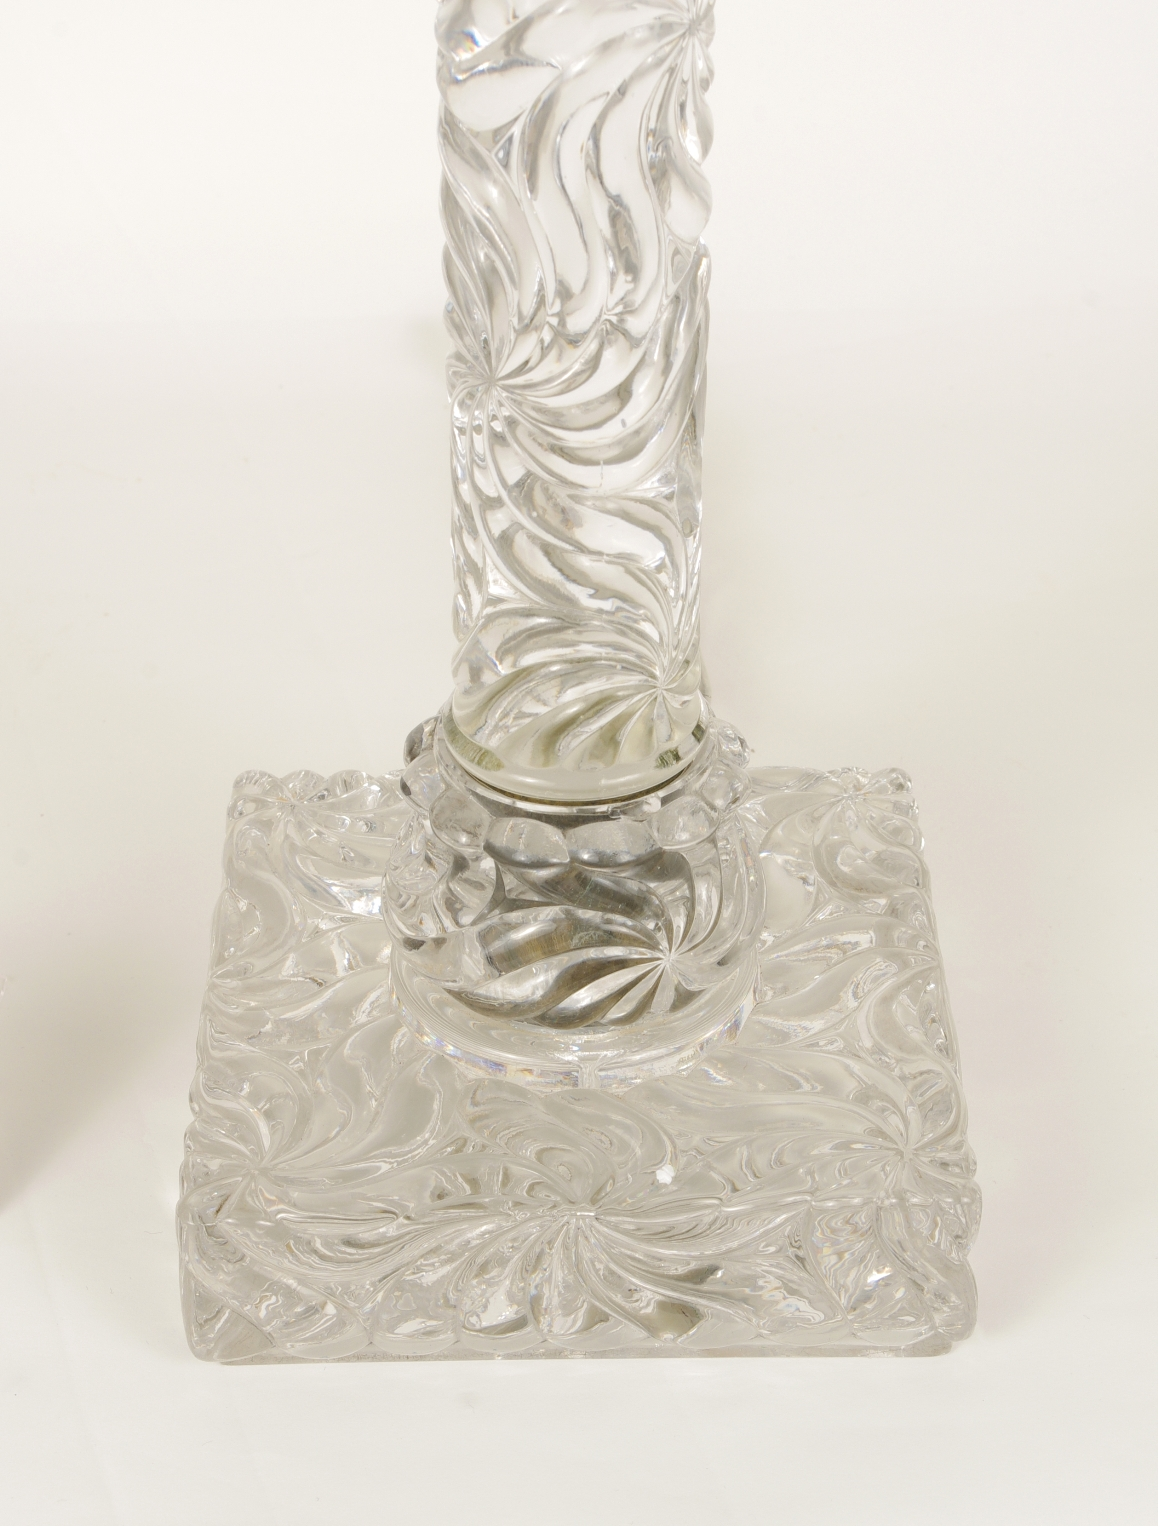 View 3: Signed Baccarat Crystal Lamp, c. 1880